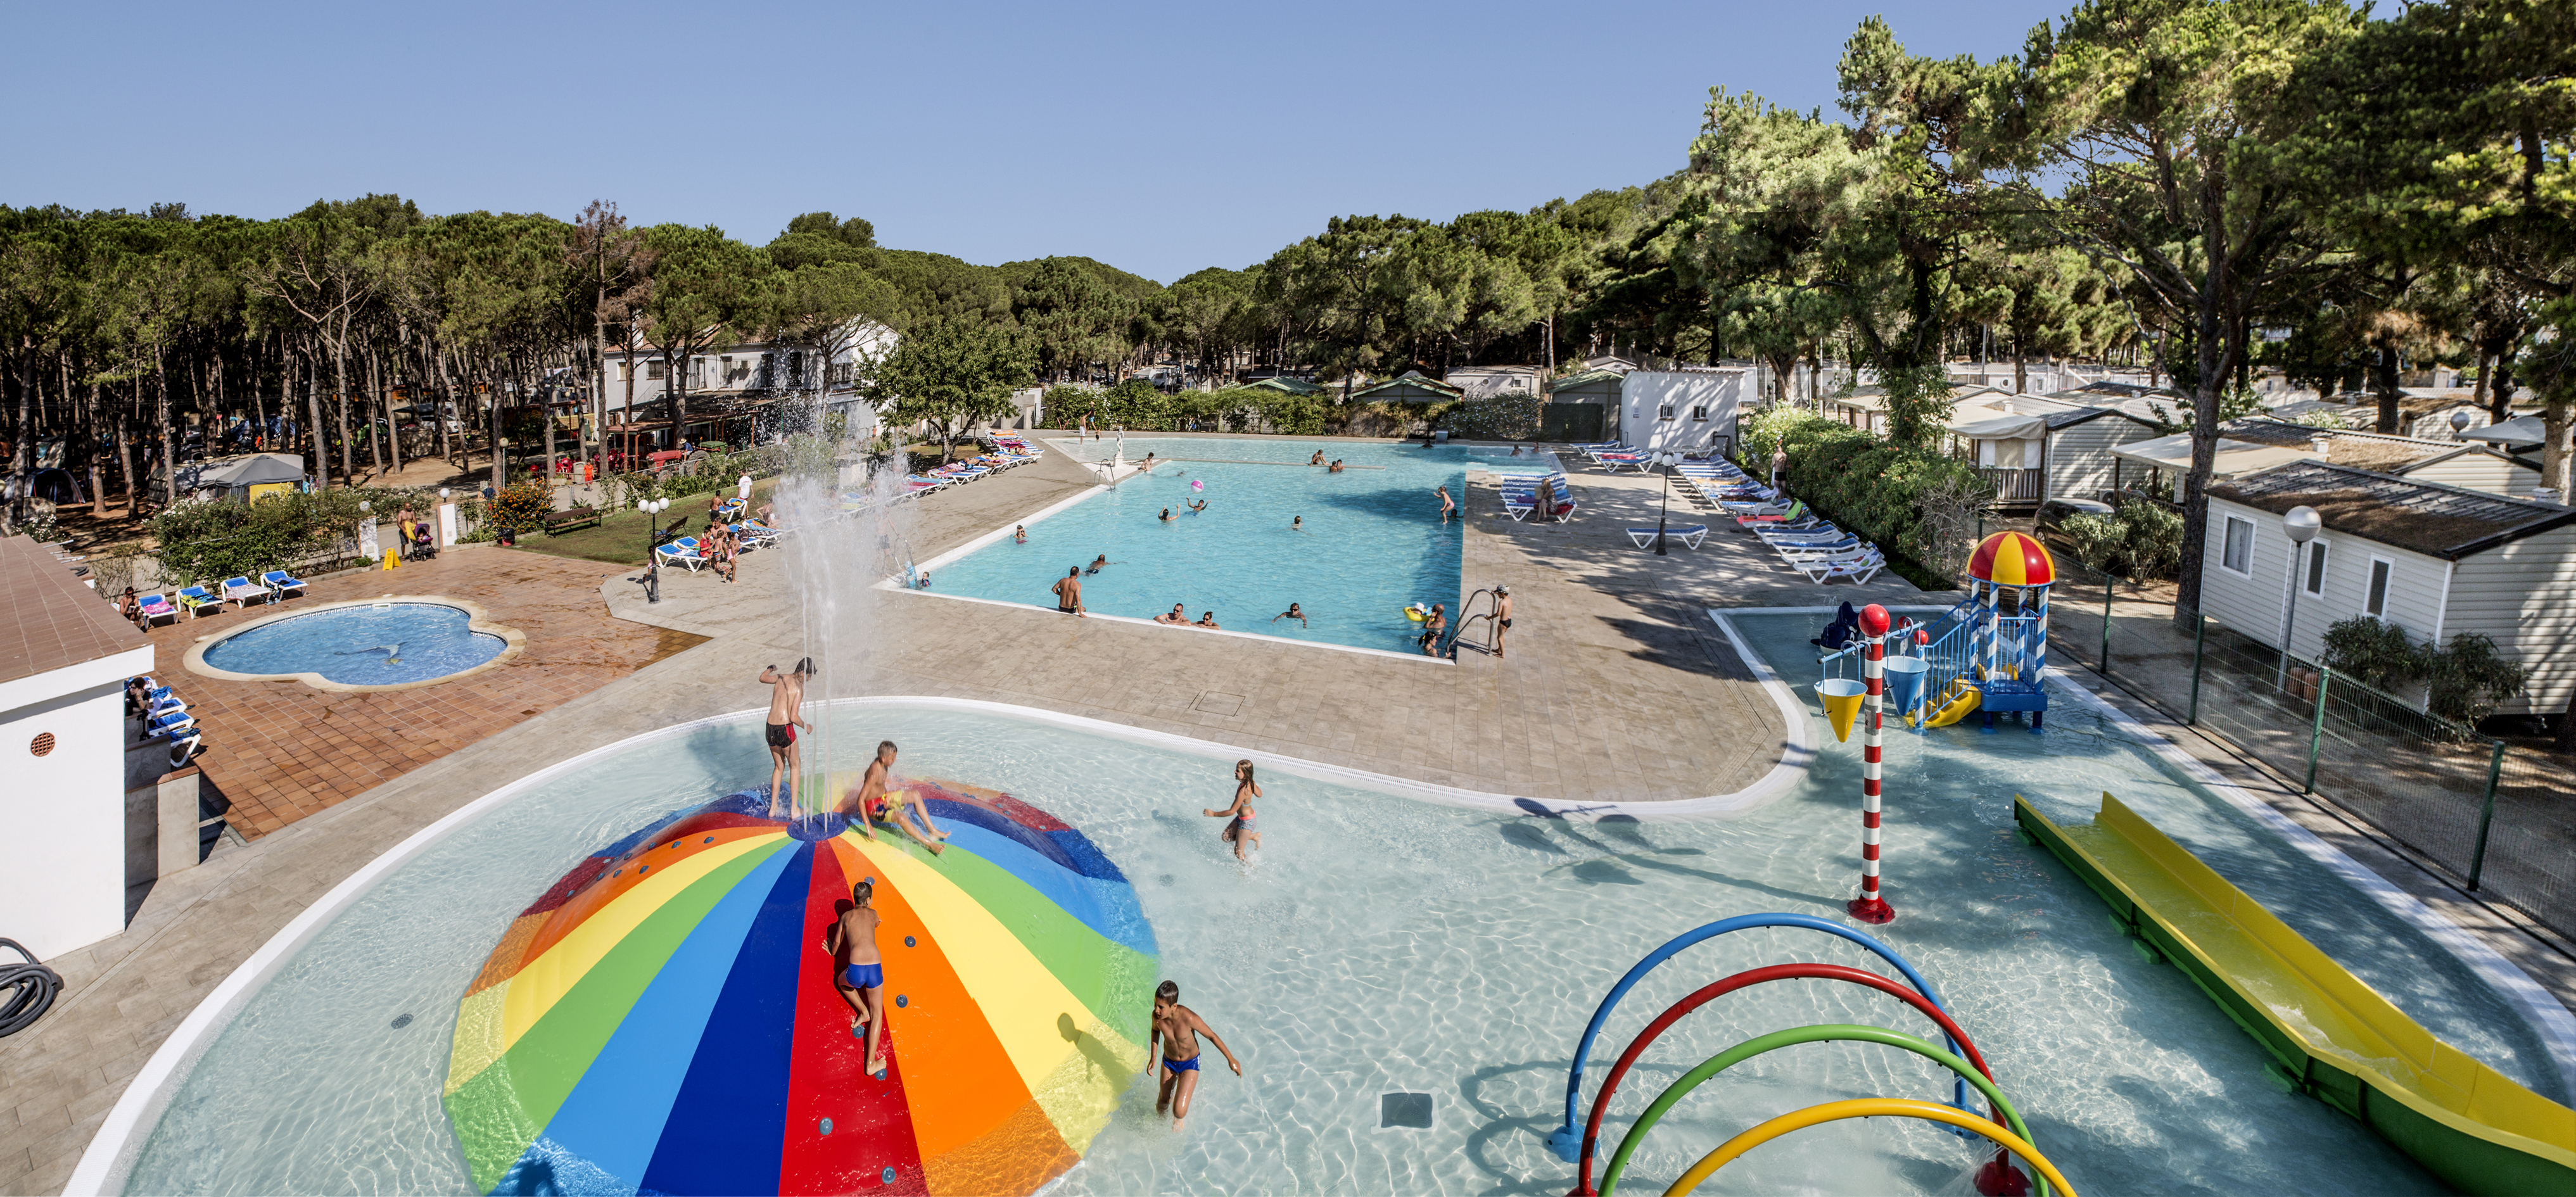 Camping espagne reservation